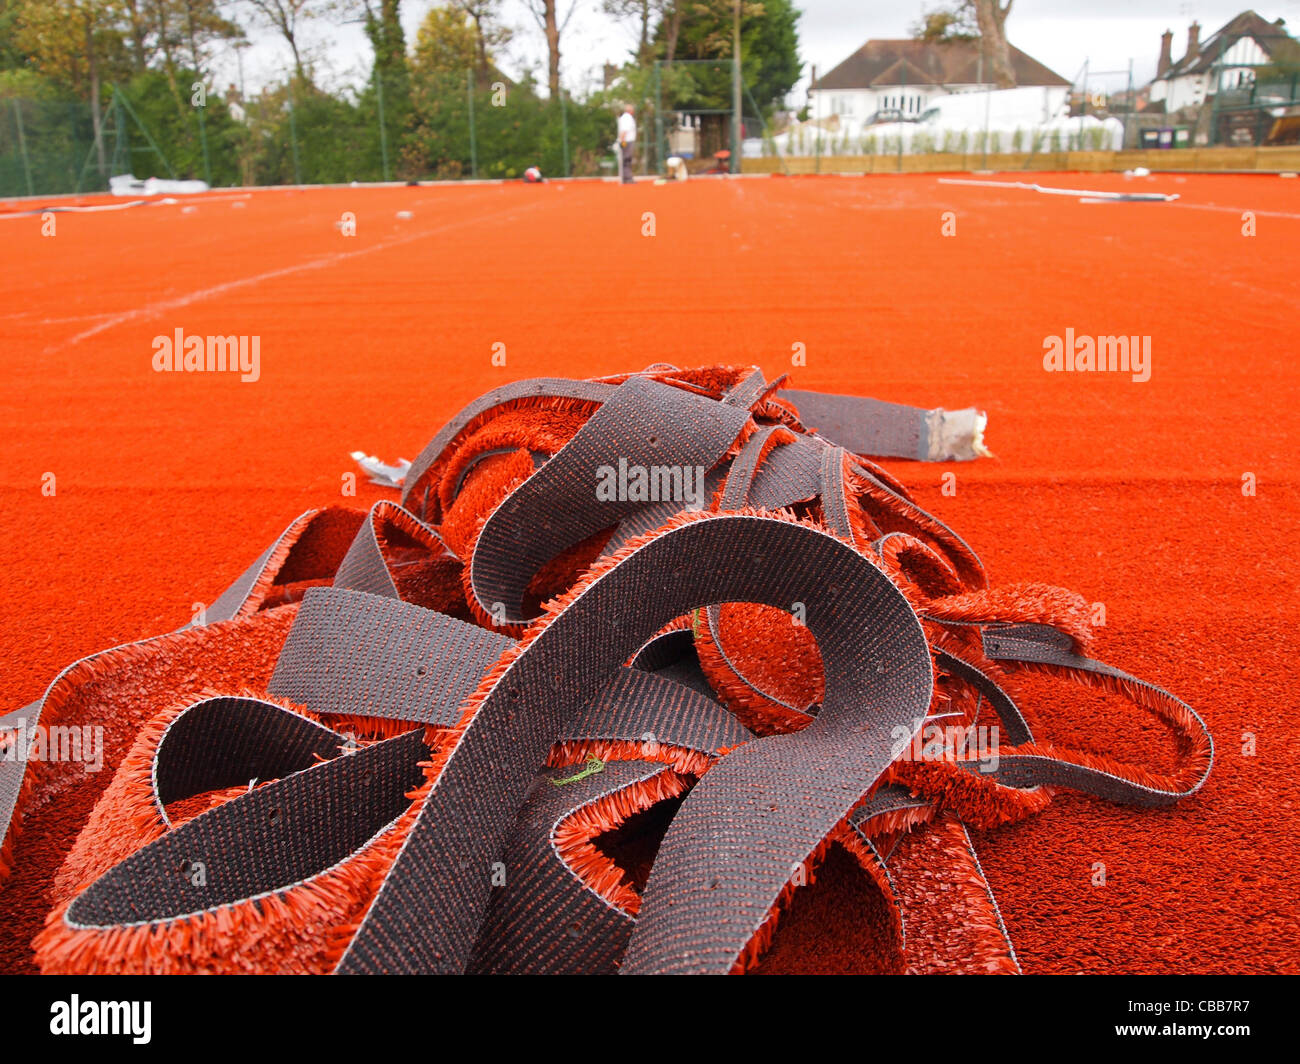 Construction of synthetic clay tennis courts - left-over trimmings of the stability mat - Stock Image